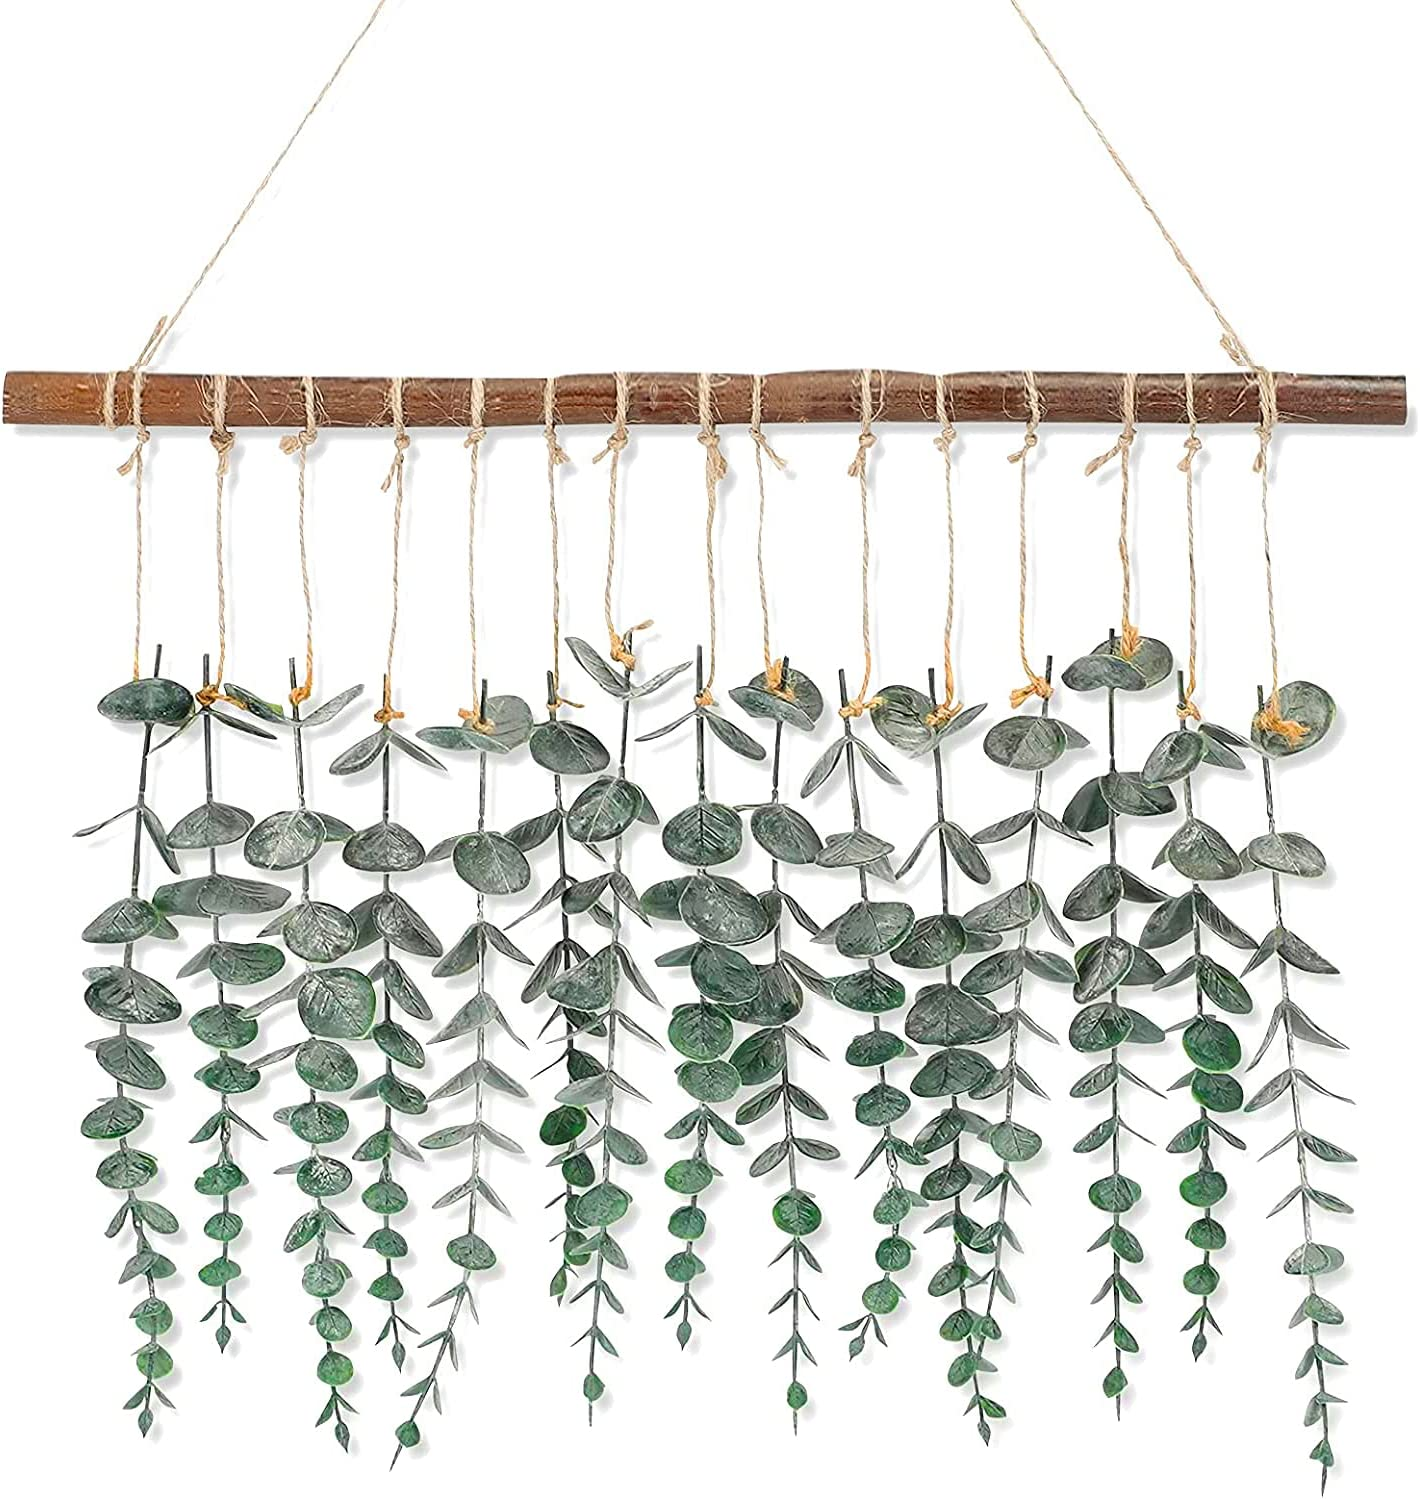 Whonline Artificial Eucalyptus Wall Hanging, Artificial Plants Wall Decor, Fake Eucalyptus Vines with Wooden Stick Decor, Farmhouse and Boho Home Decorations for Bedroom, Living Room and Bathroom